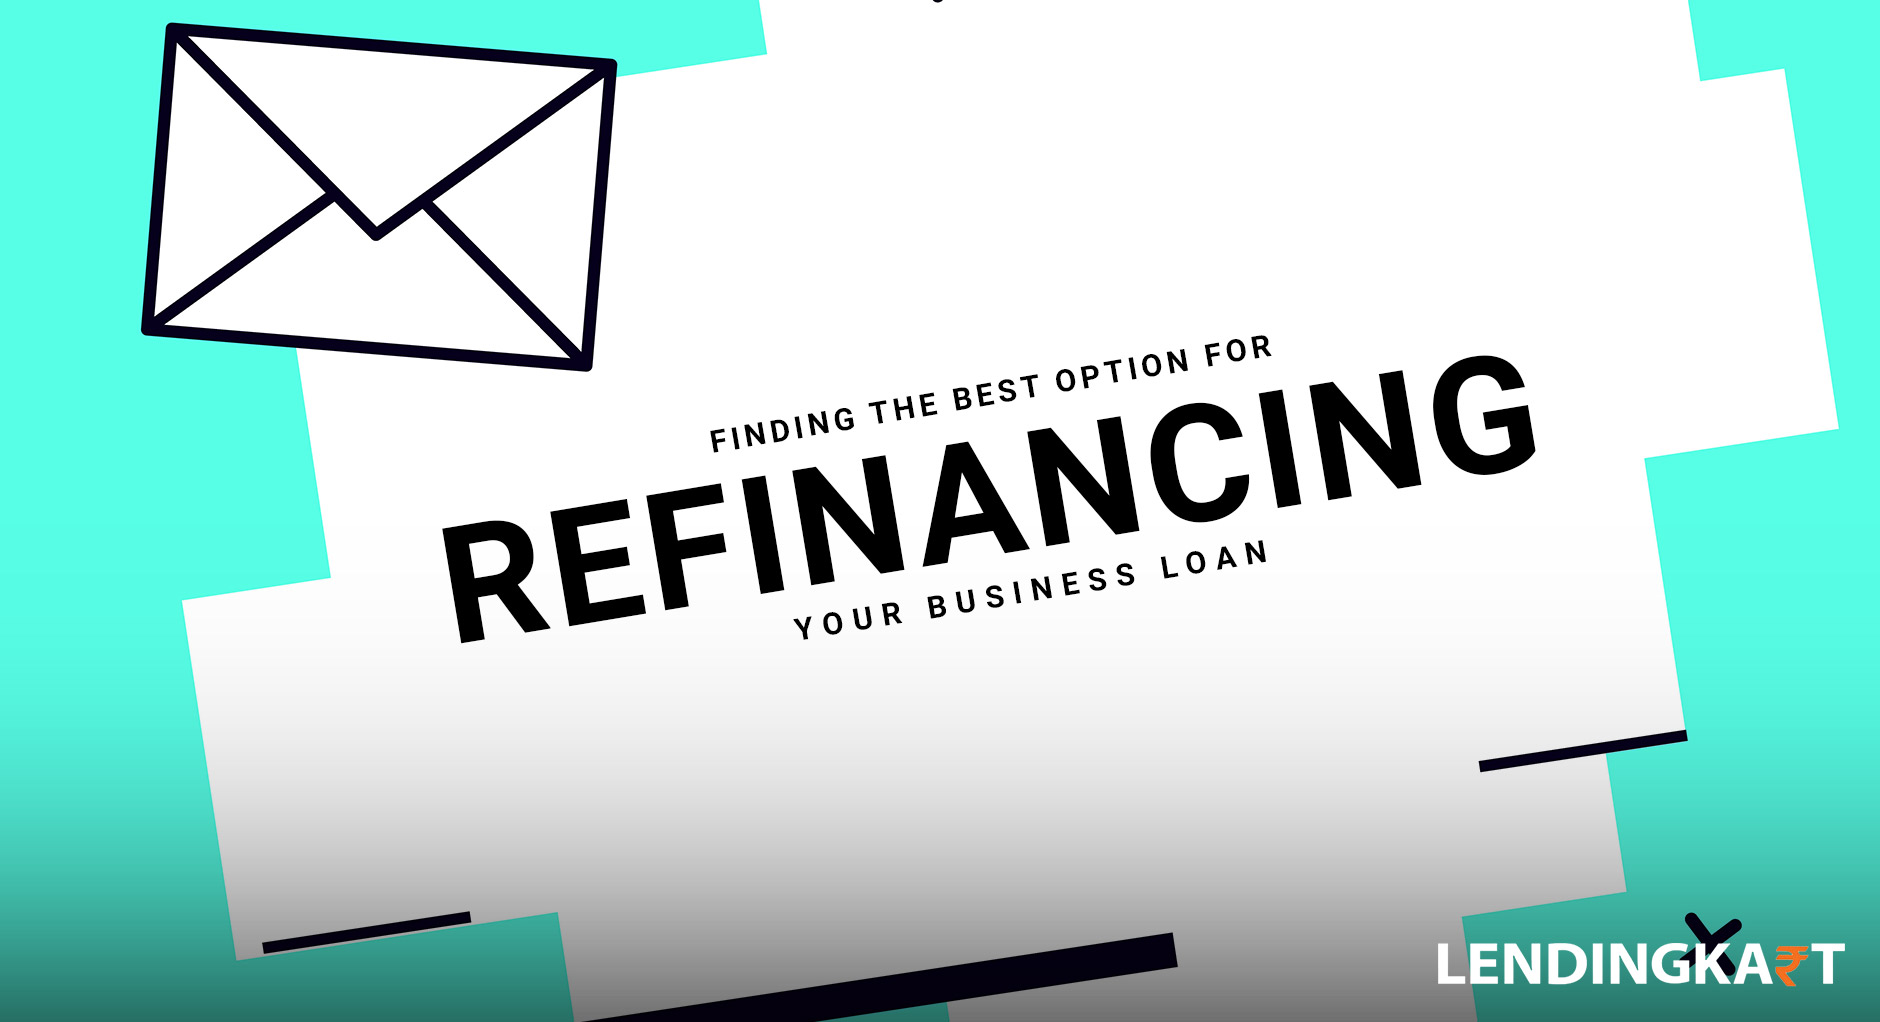 Finding the Best Option for Refinancing Your Business Loan